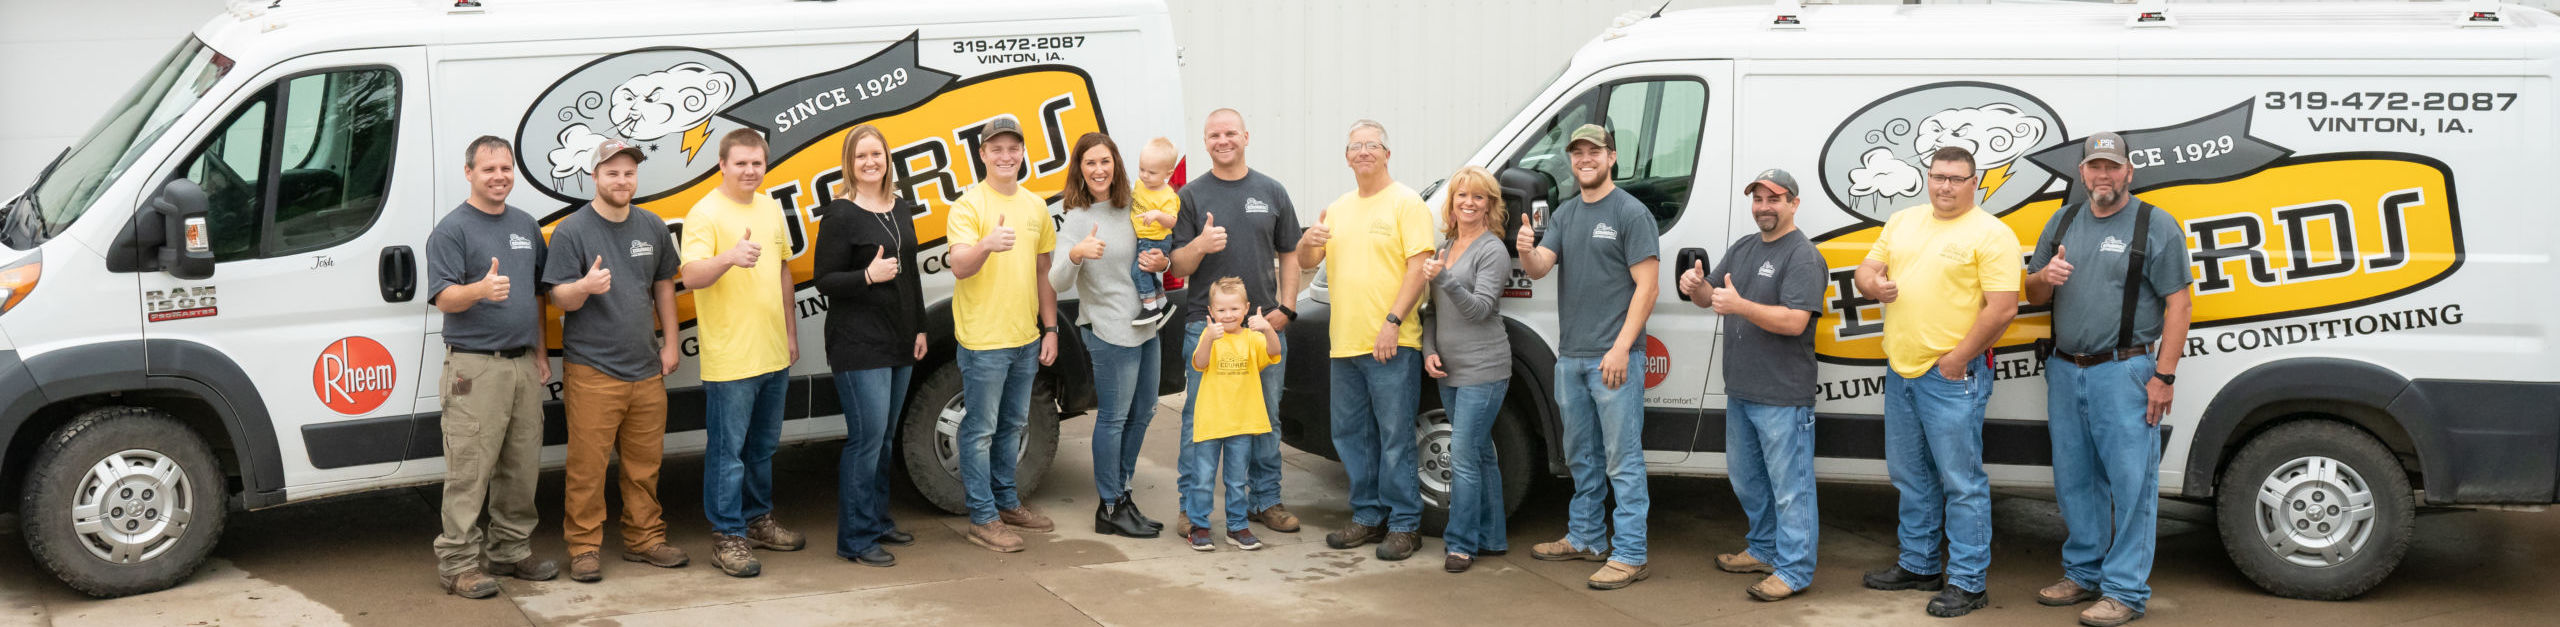 Edwards Plumbing and Heating Team in Front of Service Trucks